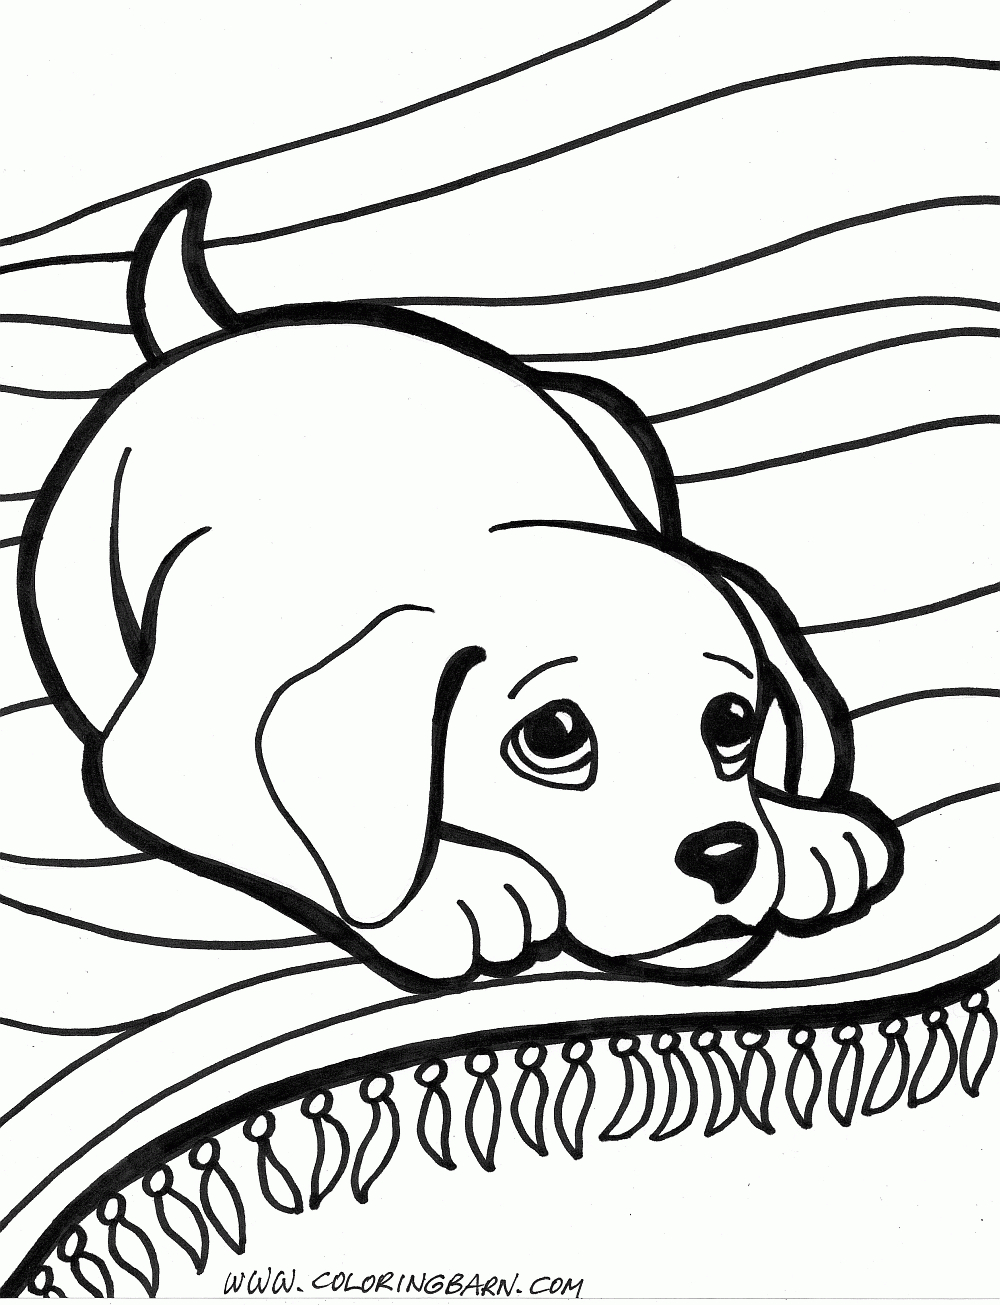 Coloring Pages Printable Free Printable Coloring Pages With Websites For Kids Also Color Birijus Com